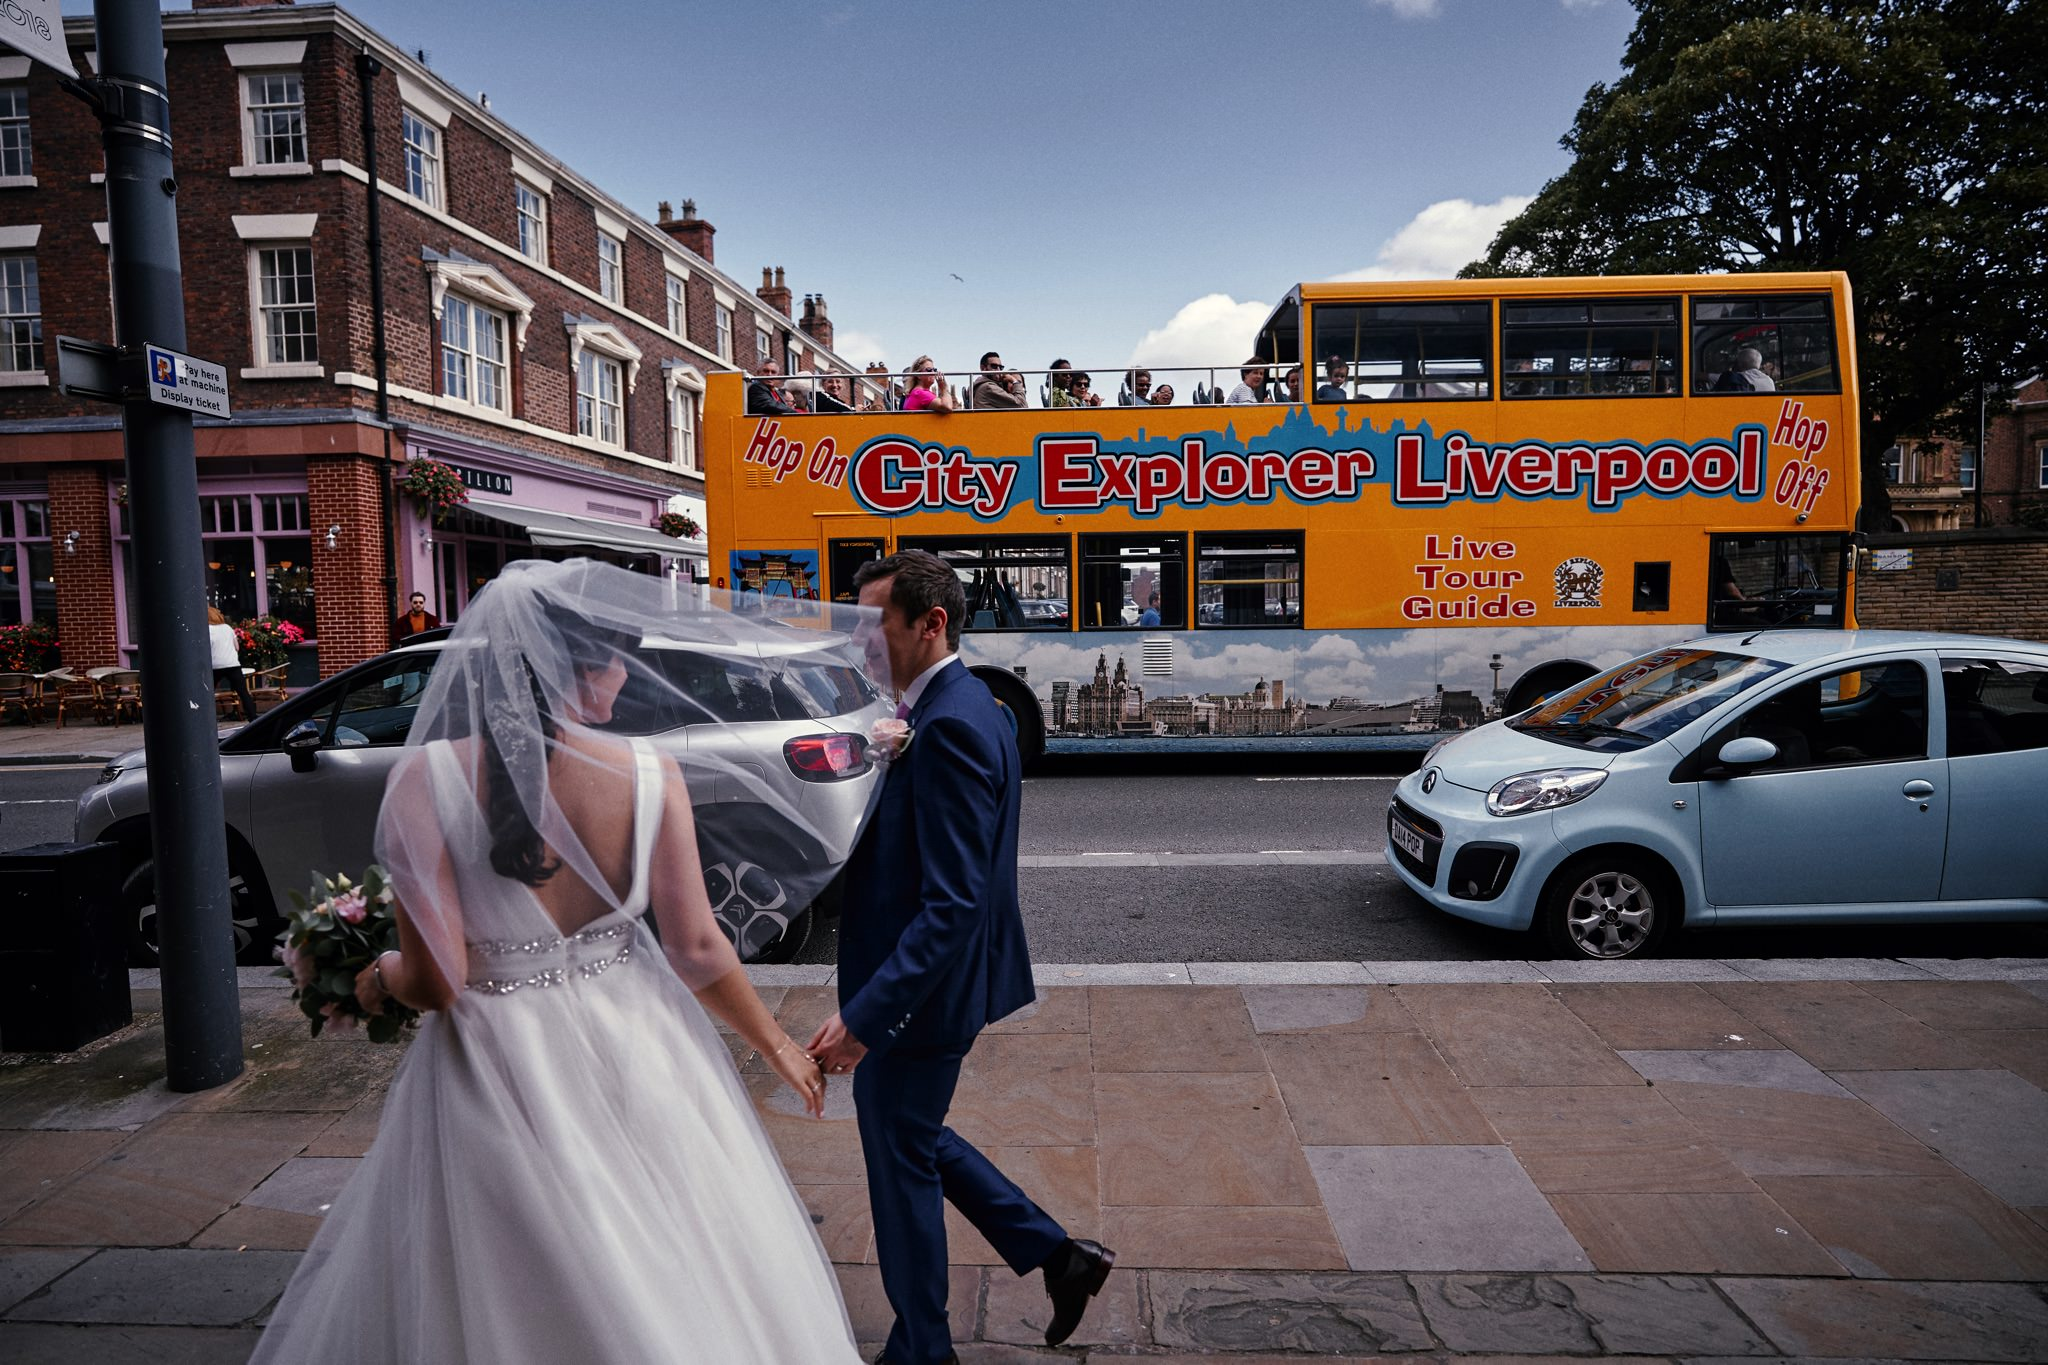 Liverpool open top bus waves to our Bride and Groom